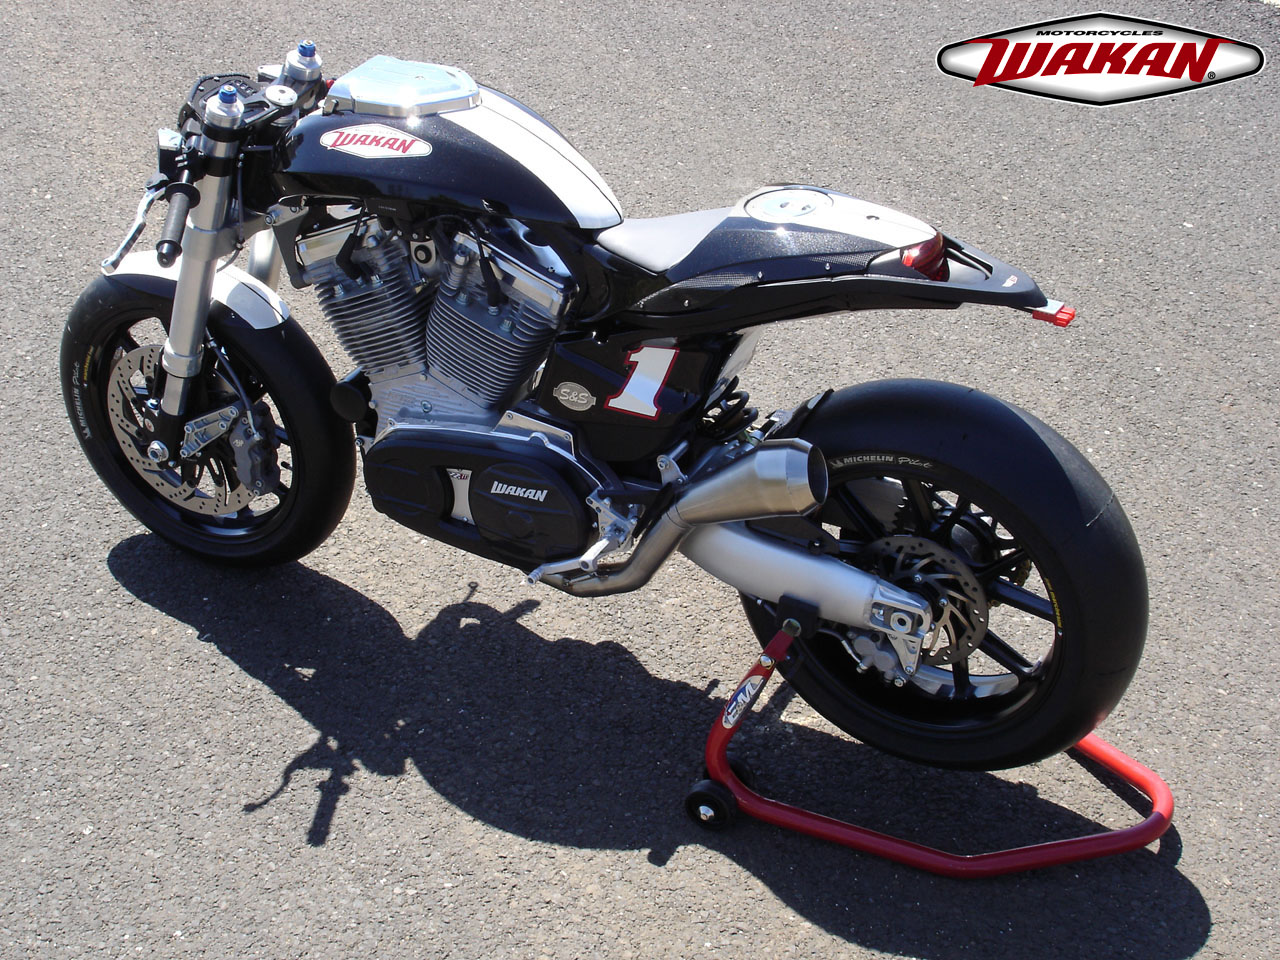 Wakan Motorcycle Photo Of The Day